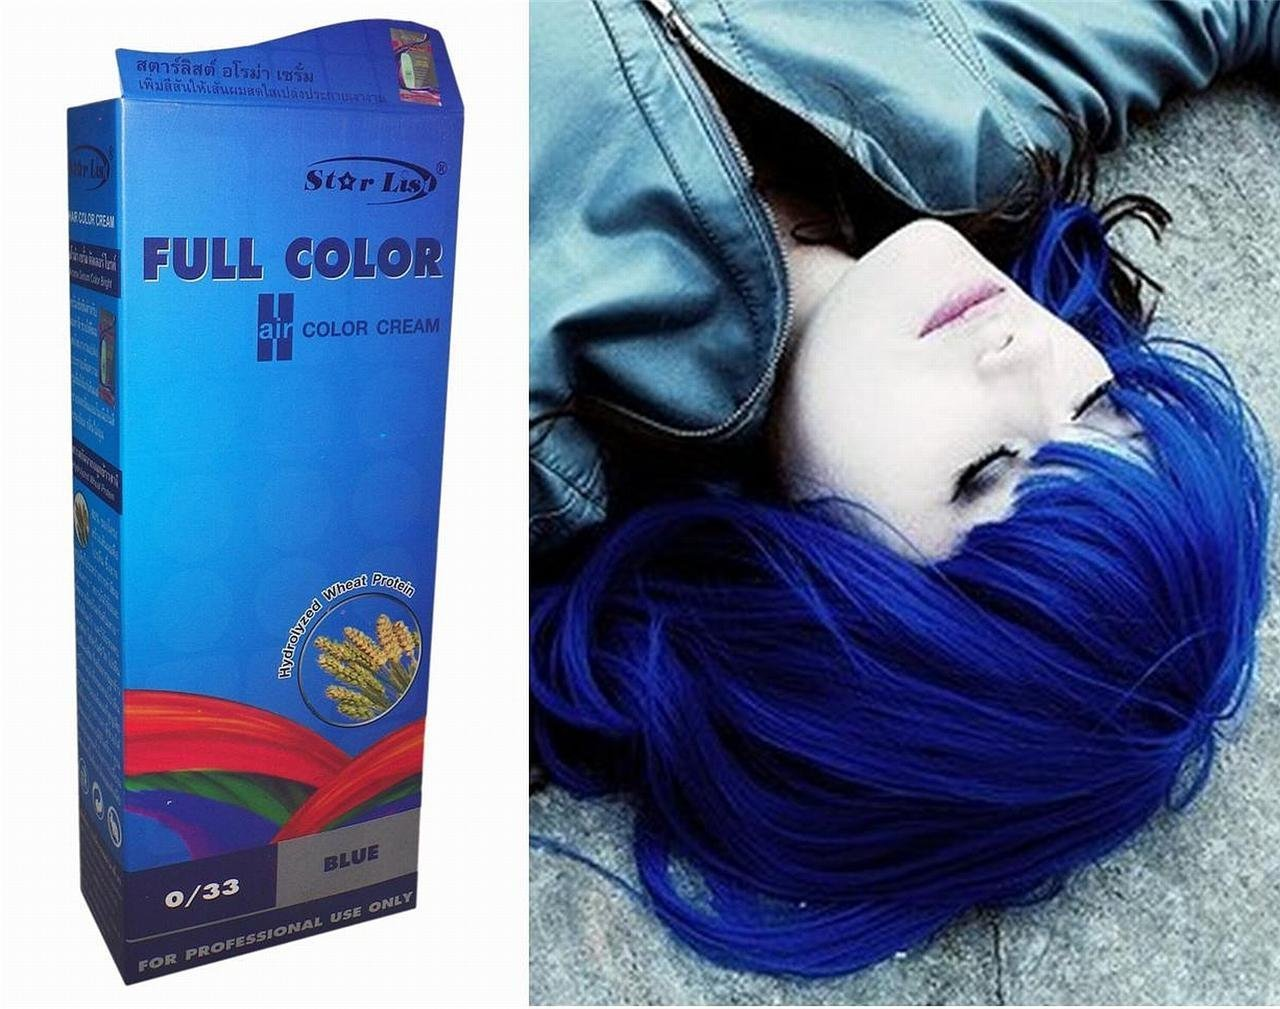 Premium Permanent Hair Colour Cream Dye Bright Blue 0_33 Punk Goth